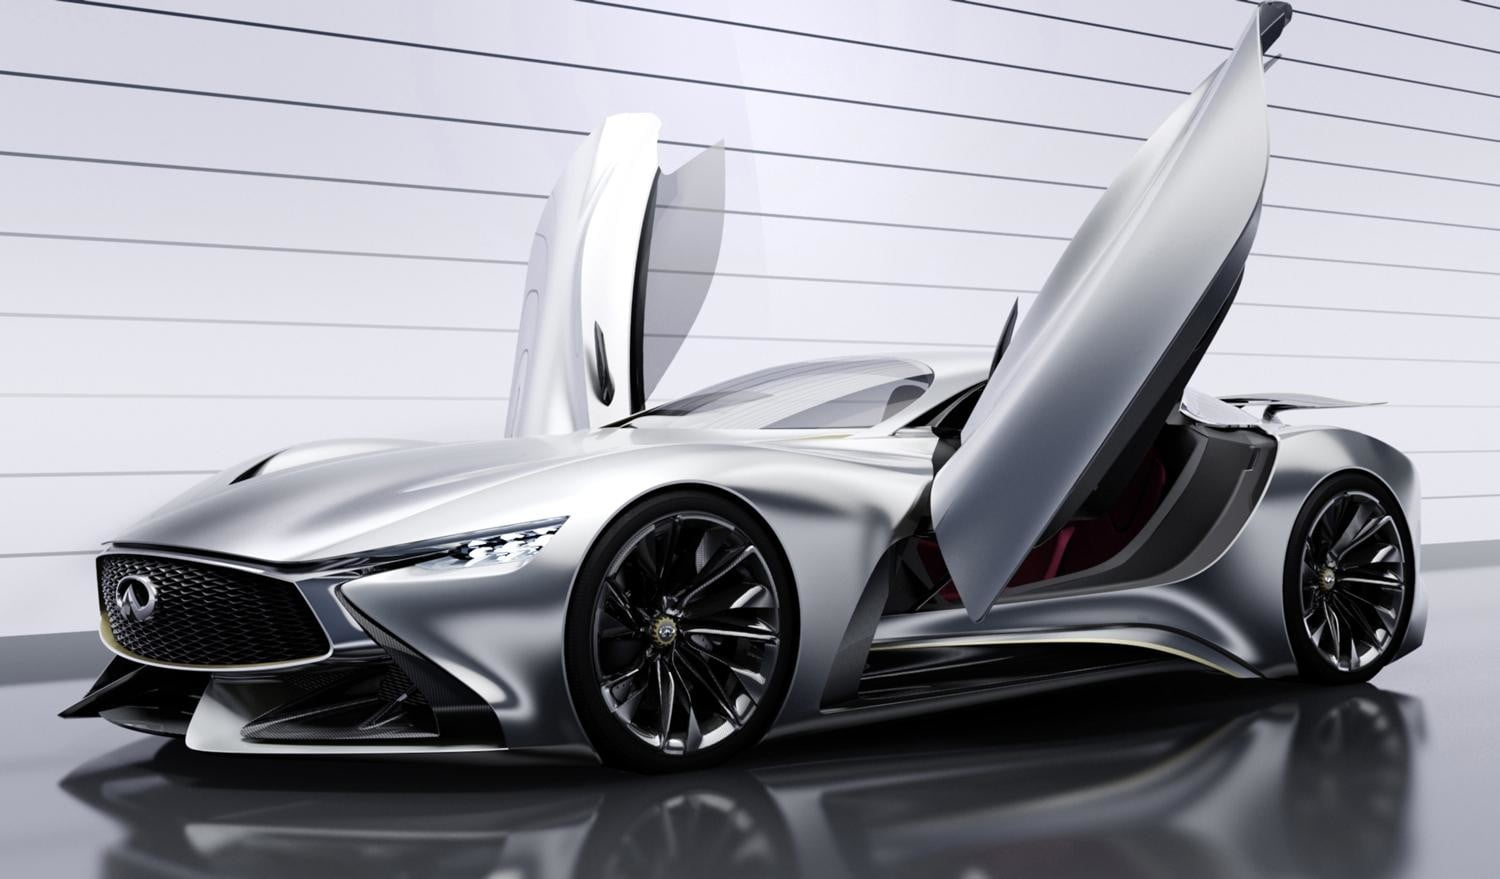 Infiniti infiniti concept car : Infiniti Concept Vision Gran Turismo   Pictures and details ...